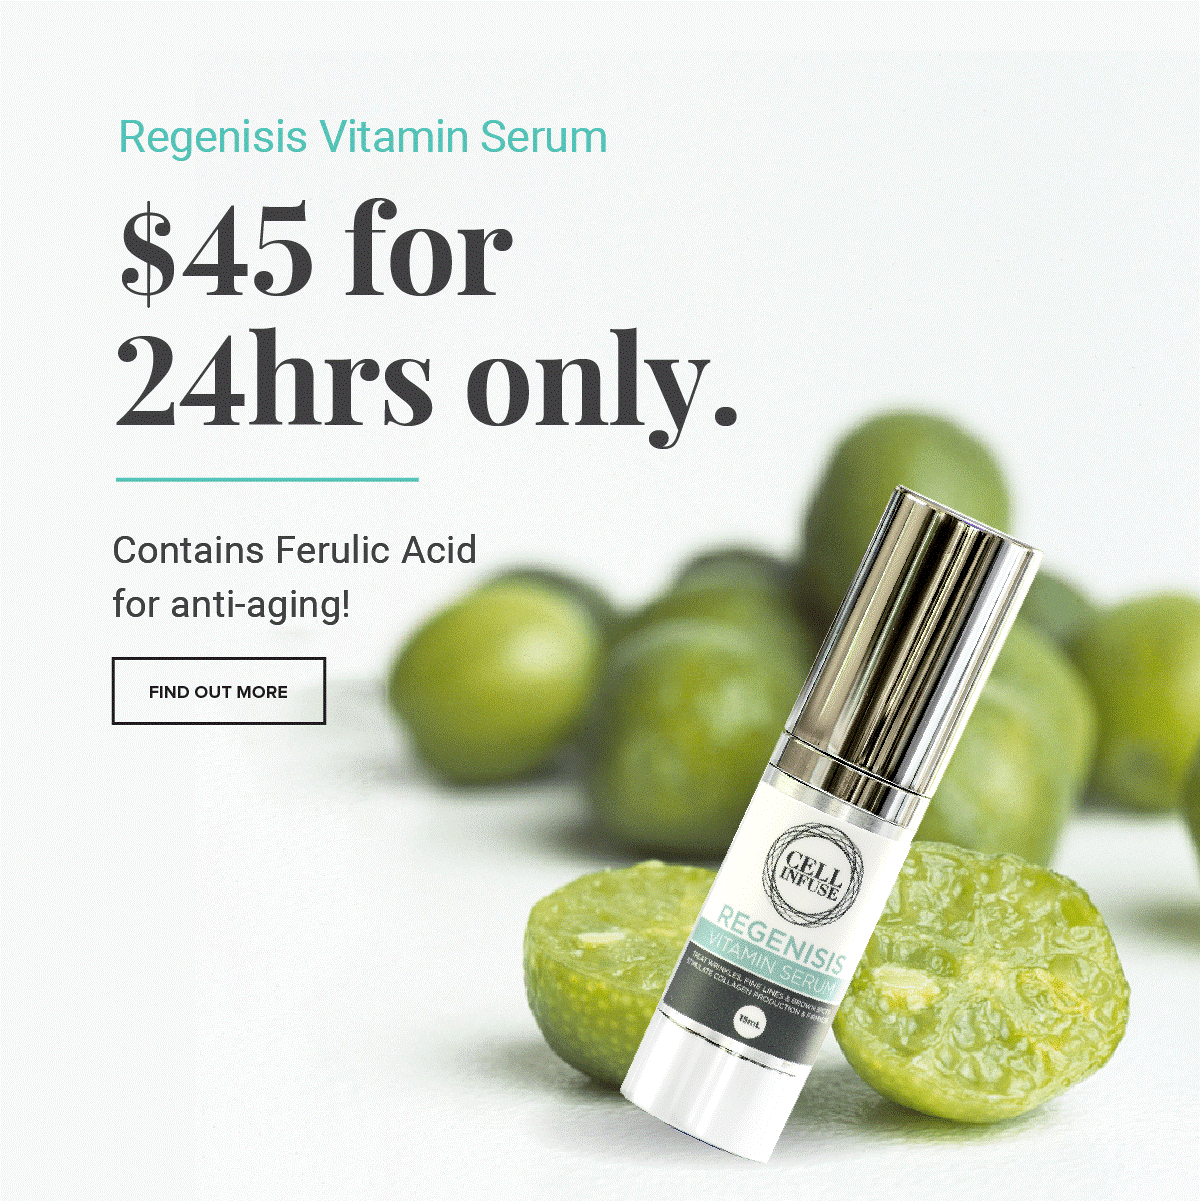 Regenisis Vitamin Serum contains Ferulic Acid